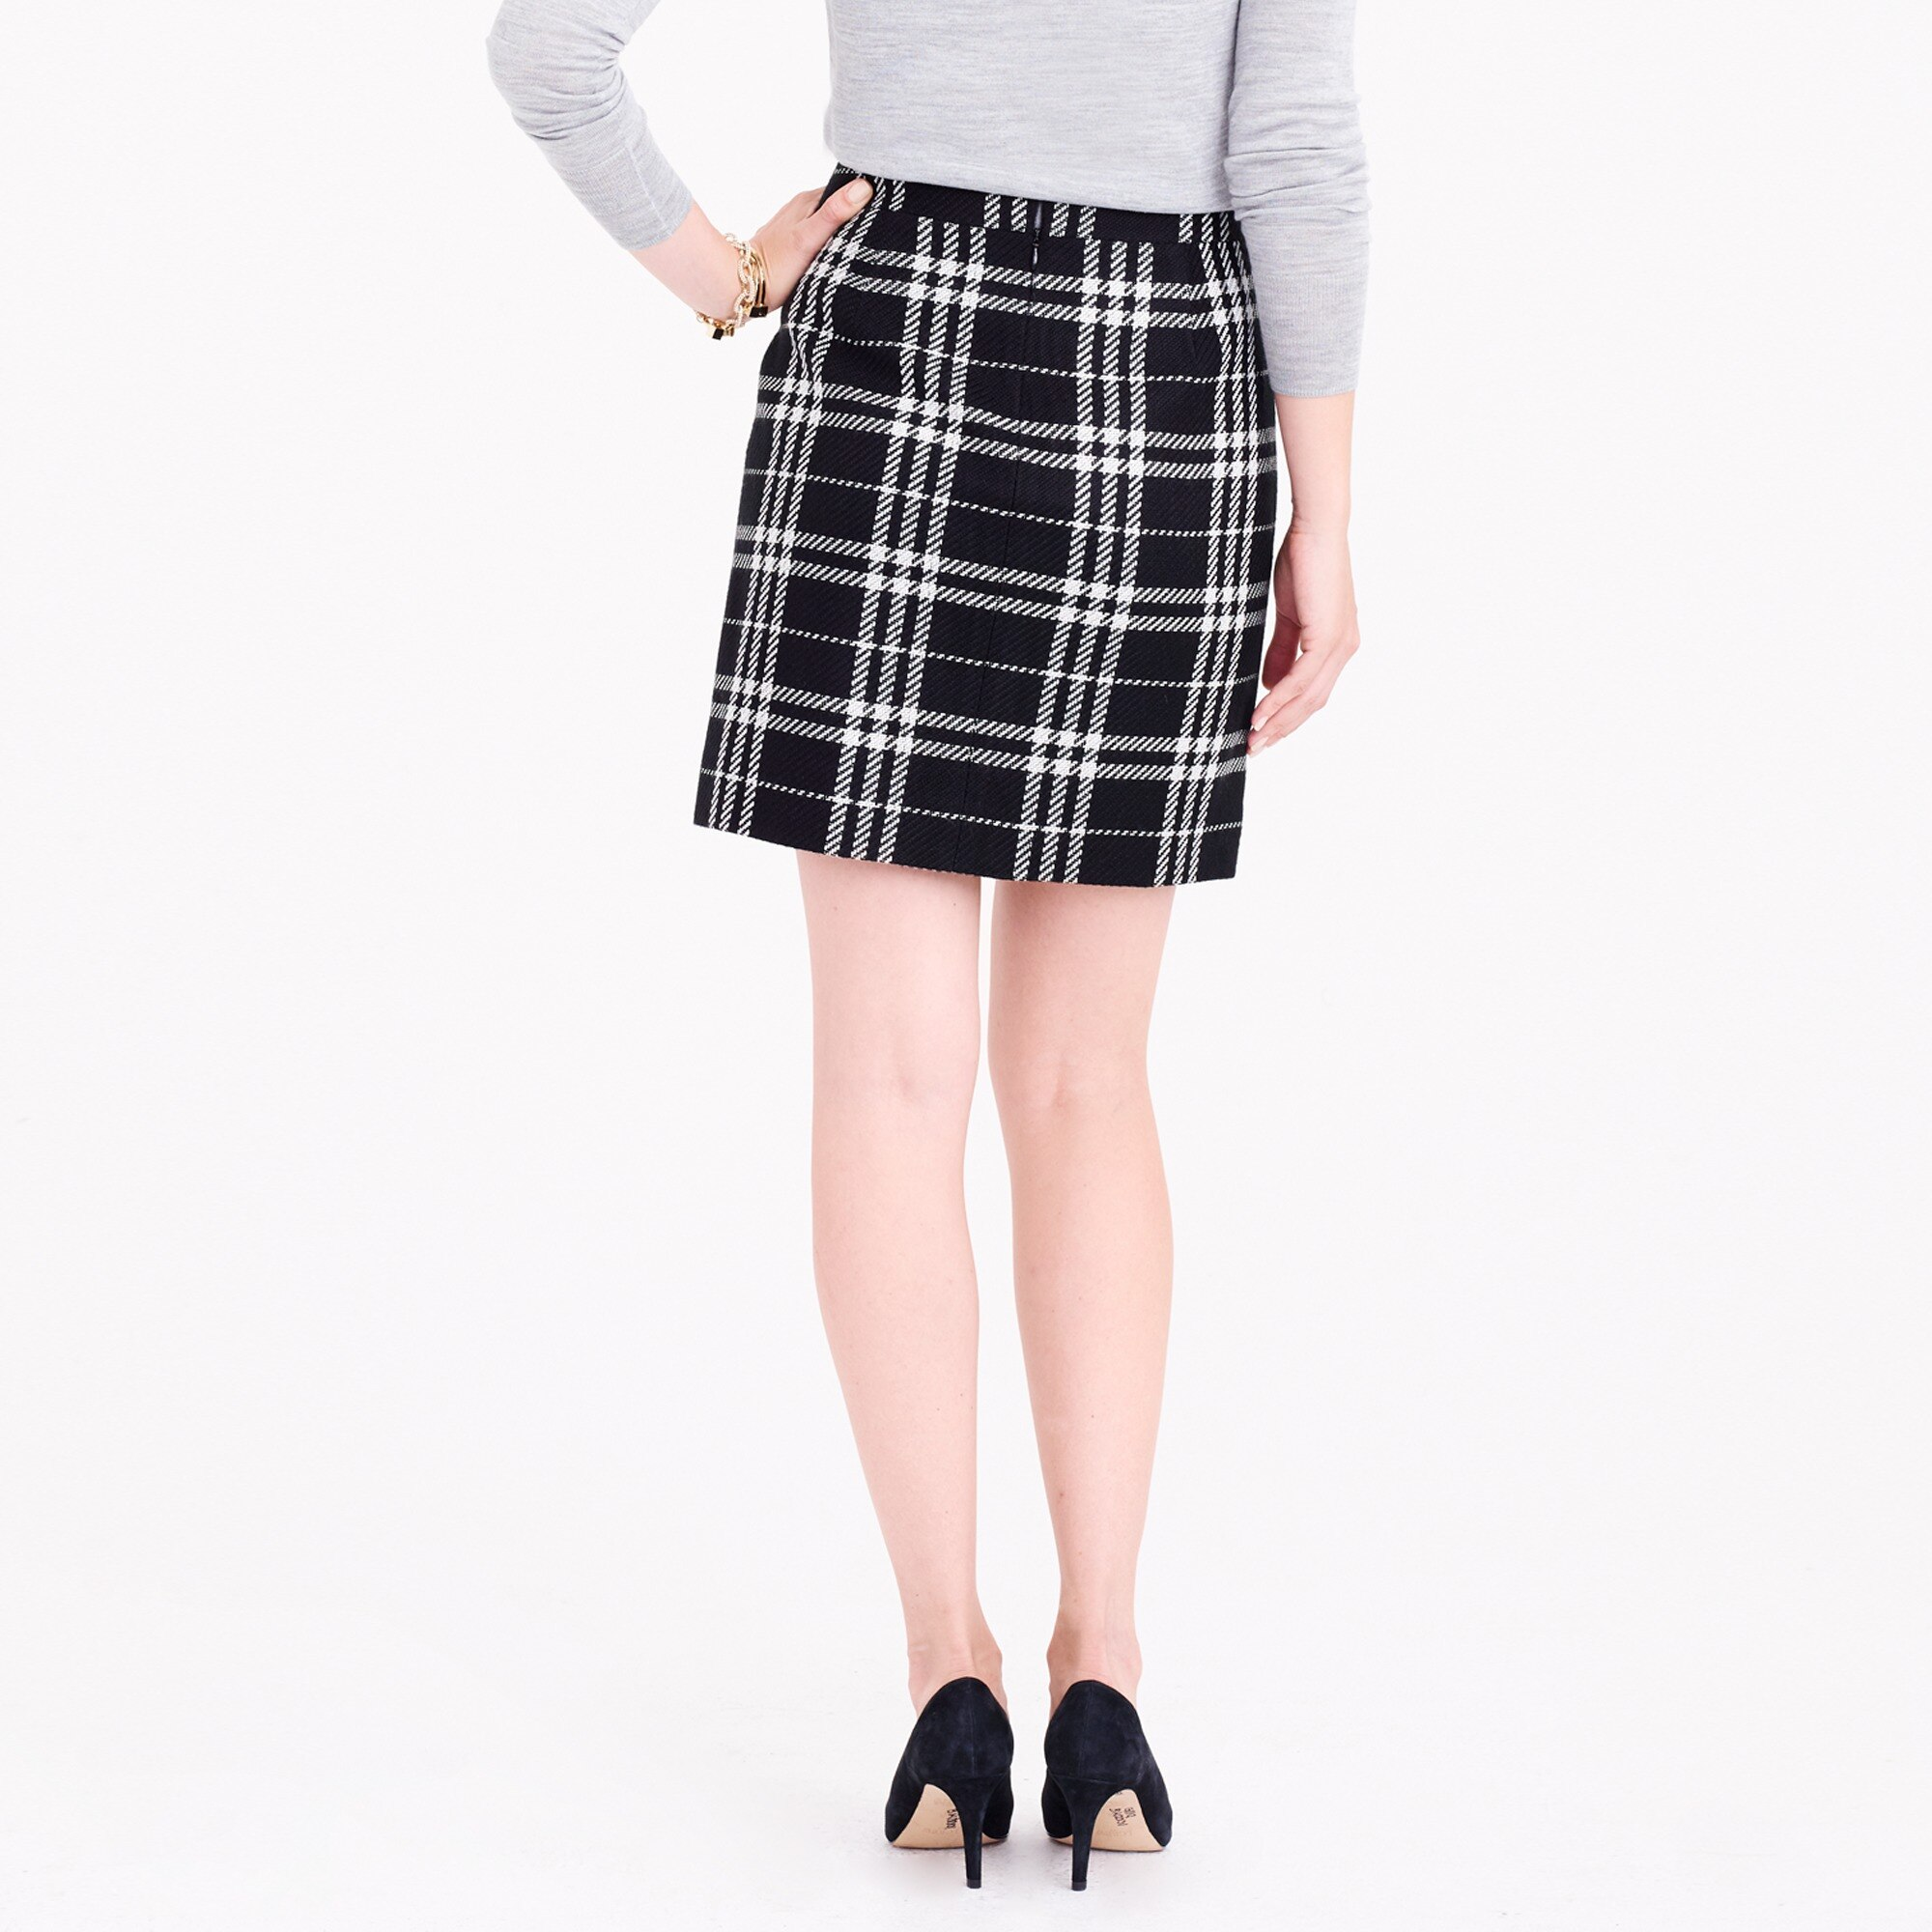 Image 3 for Plaid mini skirt